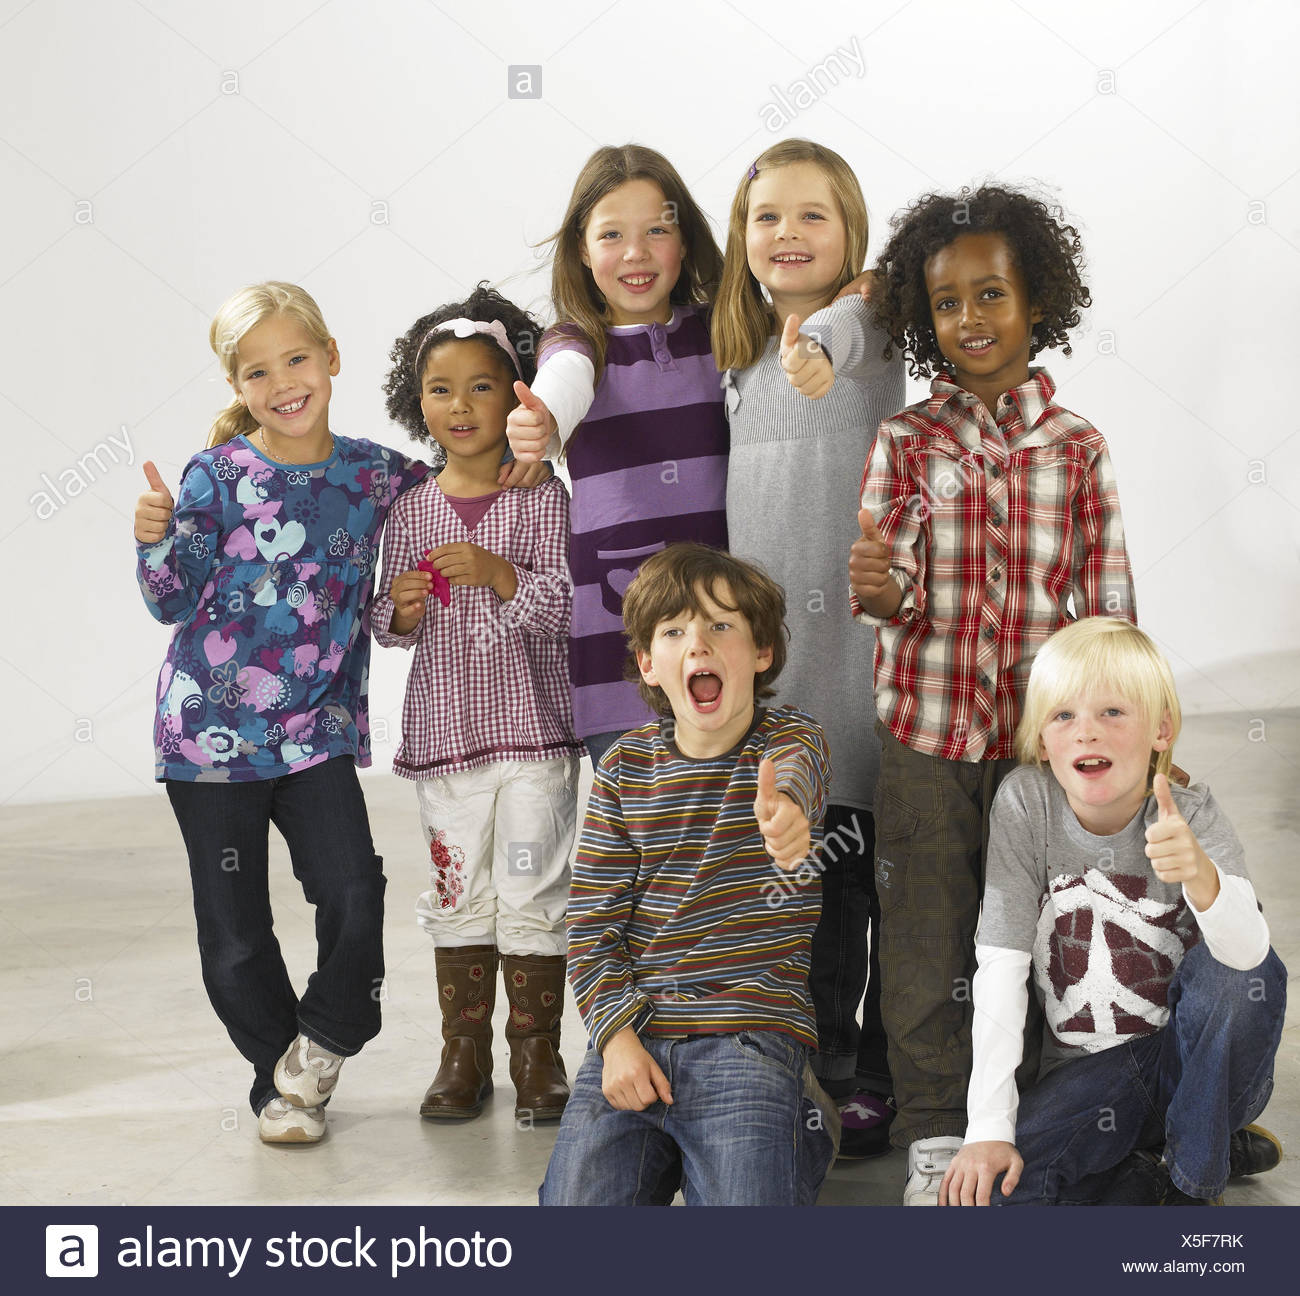 Children, nationality, passed away, laugh, happy, group picture, model released, people, girls, boys, joy, gesture, pollex high, fun, friends, cohesion, multiculturalism, multicultural, cohesion, group, studio, inside, - Stock Image